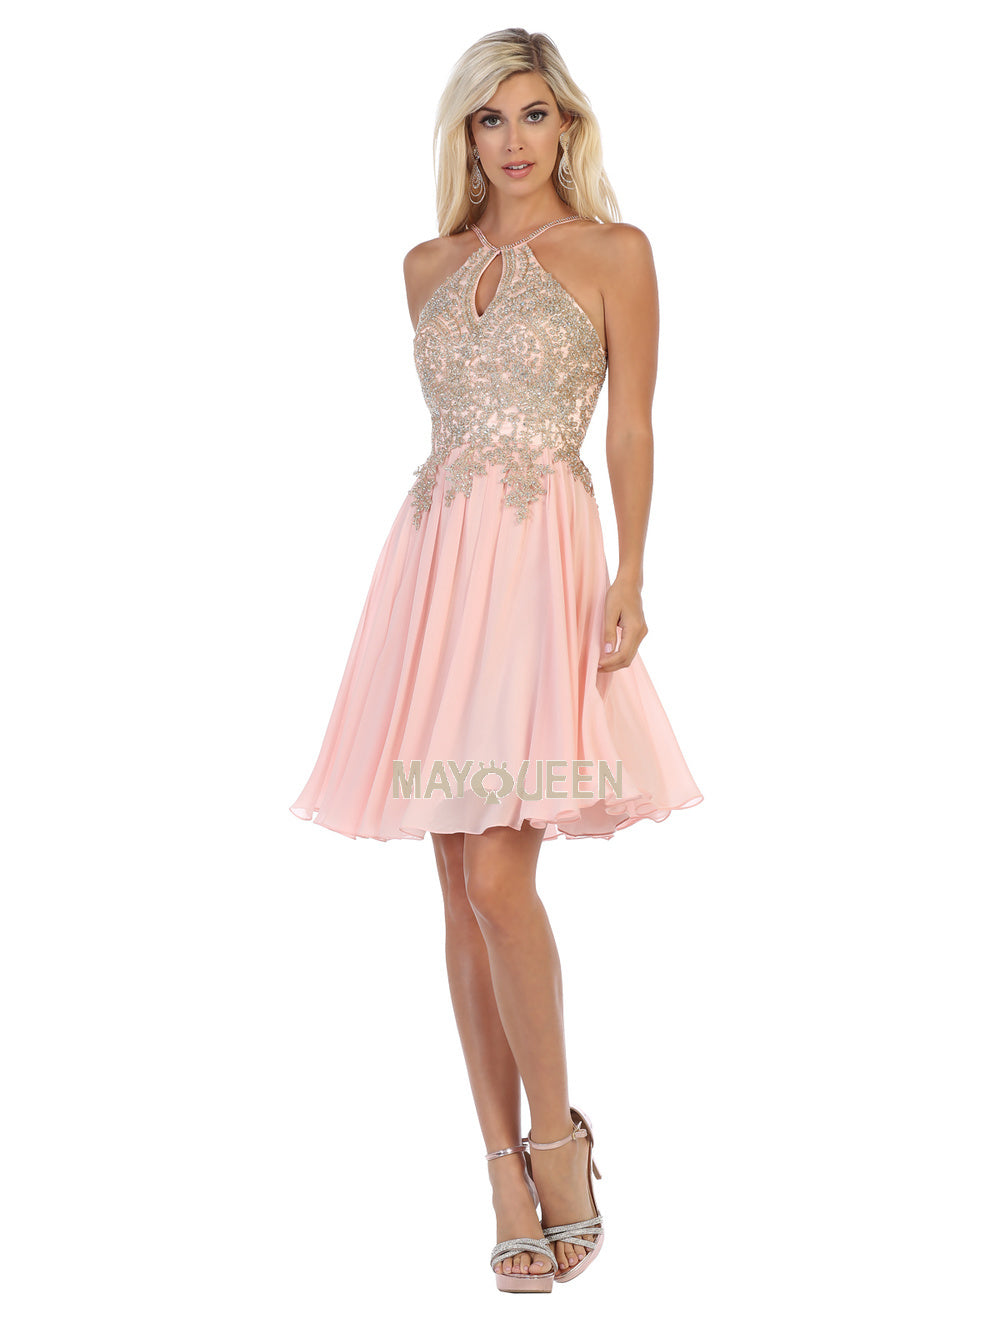 Mayqueen Size Chart E MQ 1646 - High Neck Embellished Bodice Short Chiffon Skirt - Diggz Prom